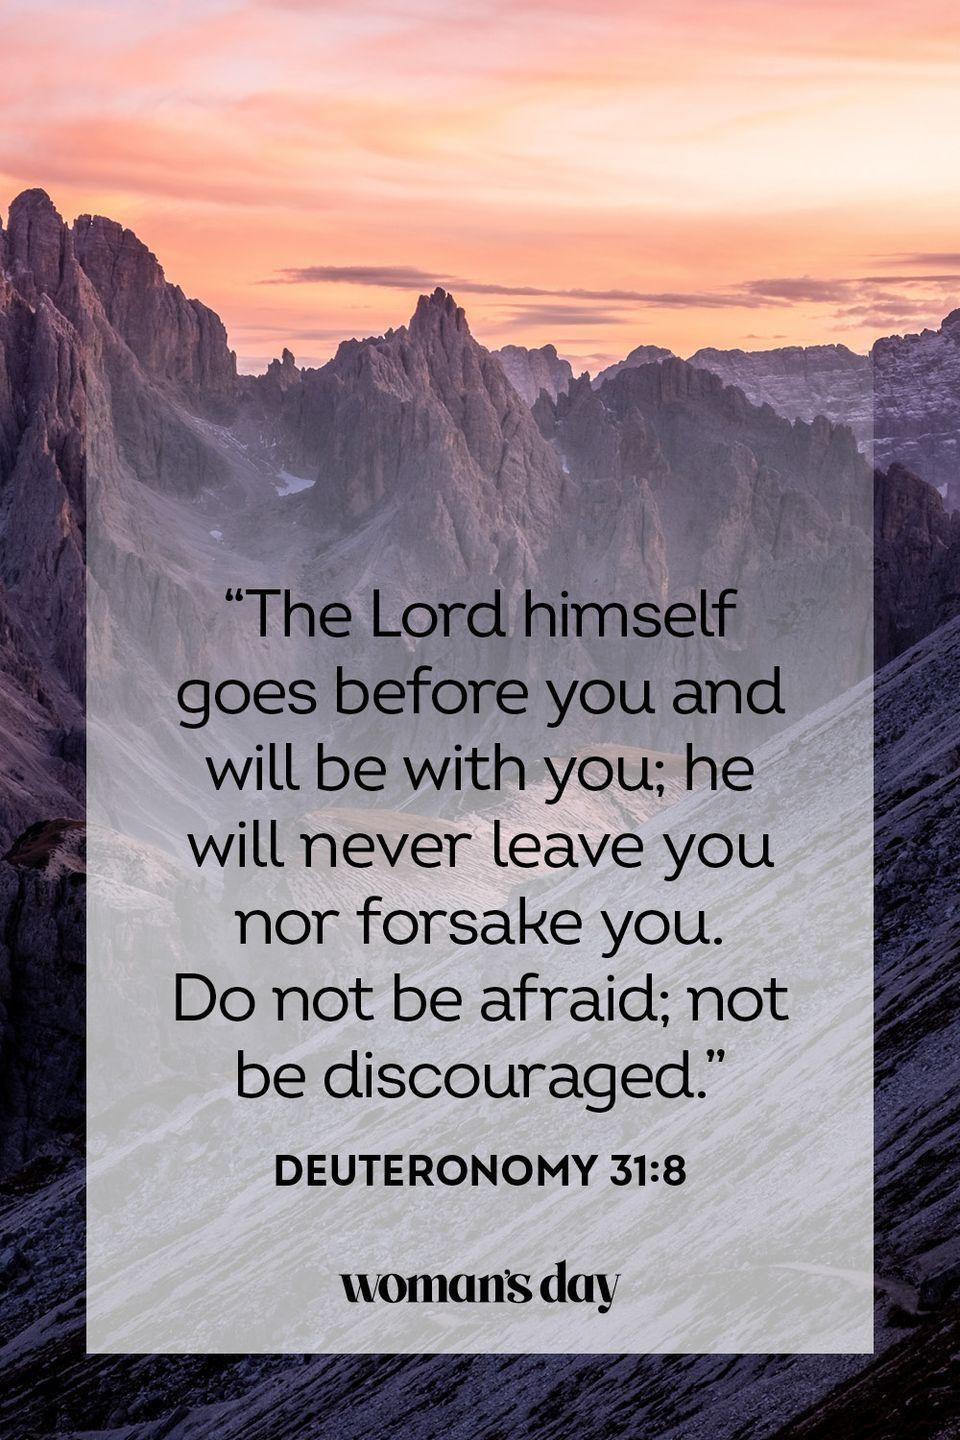 "<p>""The Lord himself goes before you and will be with you; he will never leave you nor forsake you. Do not be afraid; not not be discouraged.""</p><p><strong>The Good News: </strong>Trust that the lord will guide you out of any difficult situation. </p>"